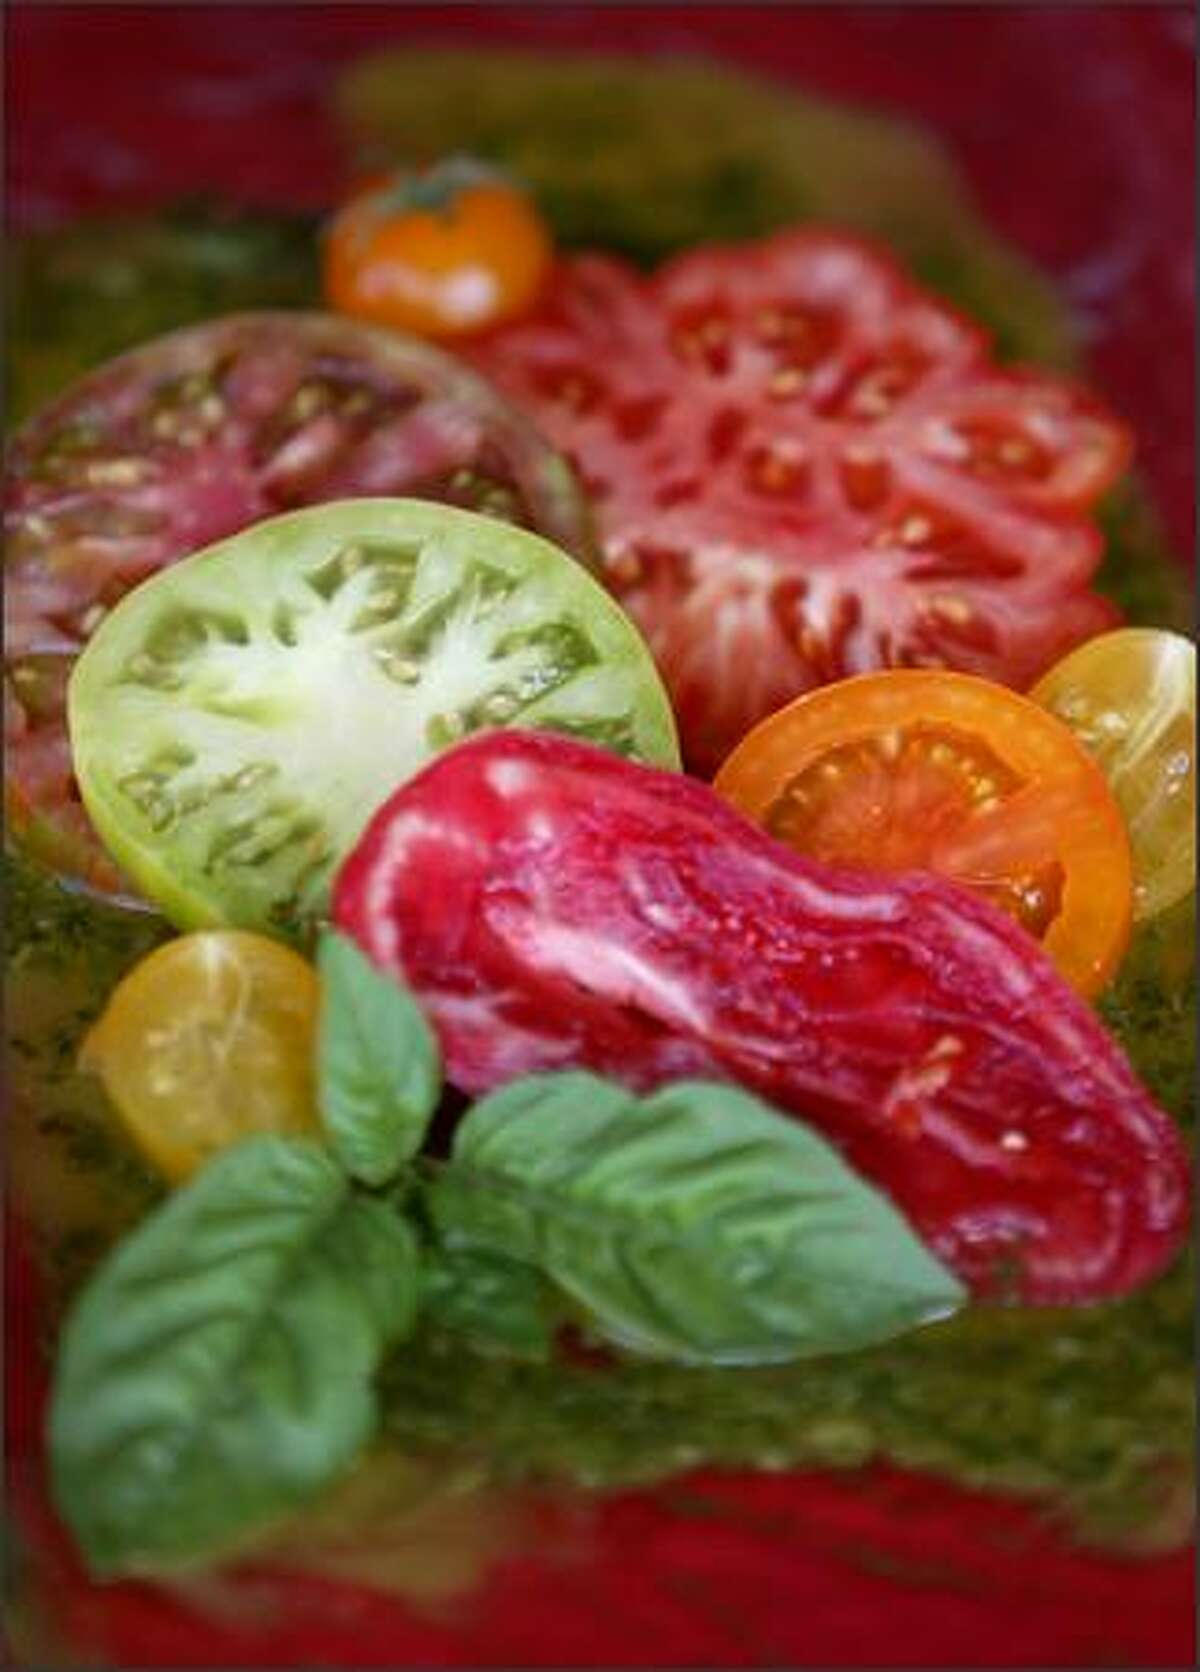 Now is the best time for tomatoes, but make certain they're firm. They pair with most any food, and can be served fresh, grilled, roasted or sauteed.